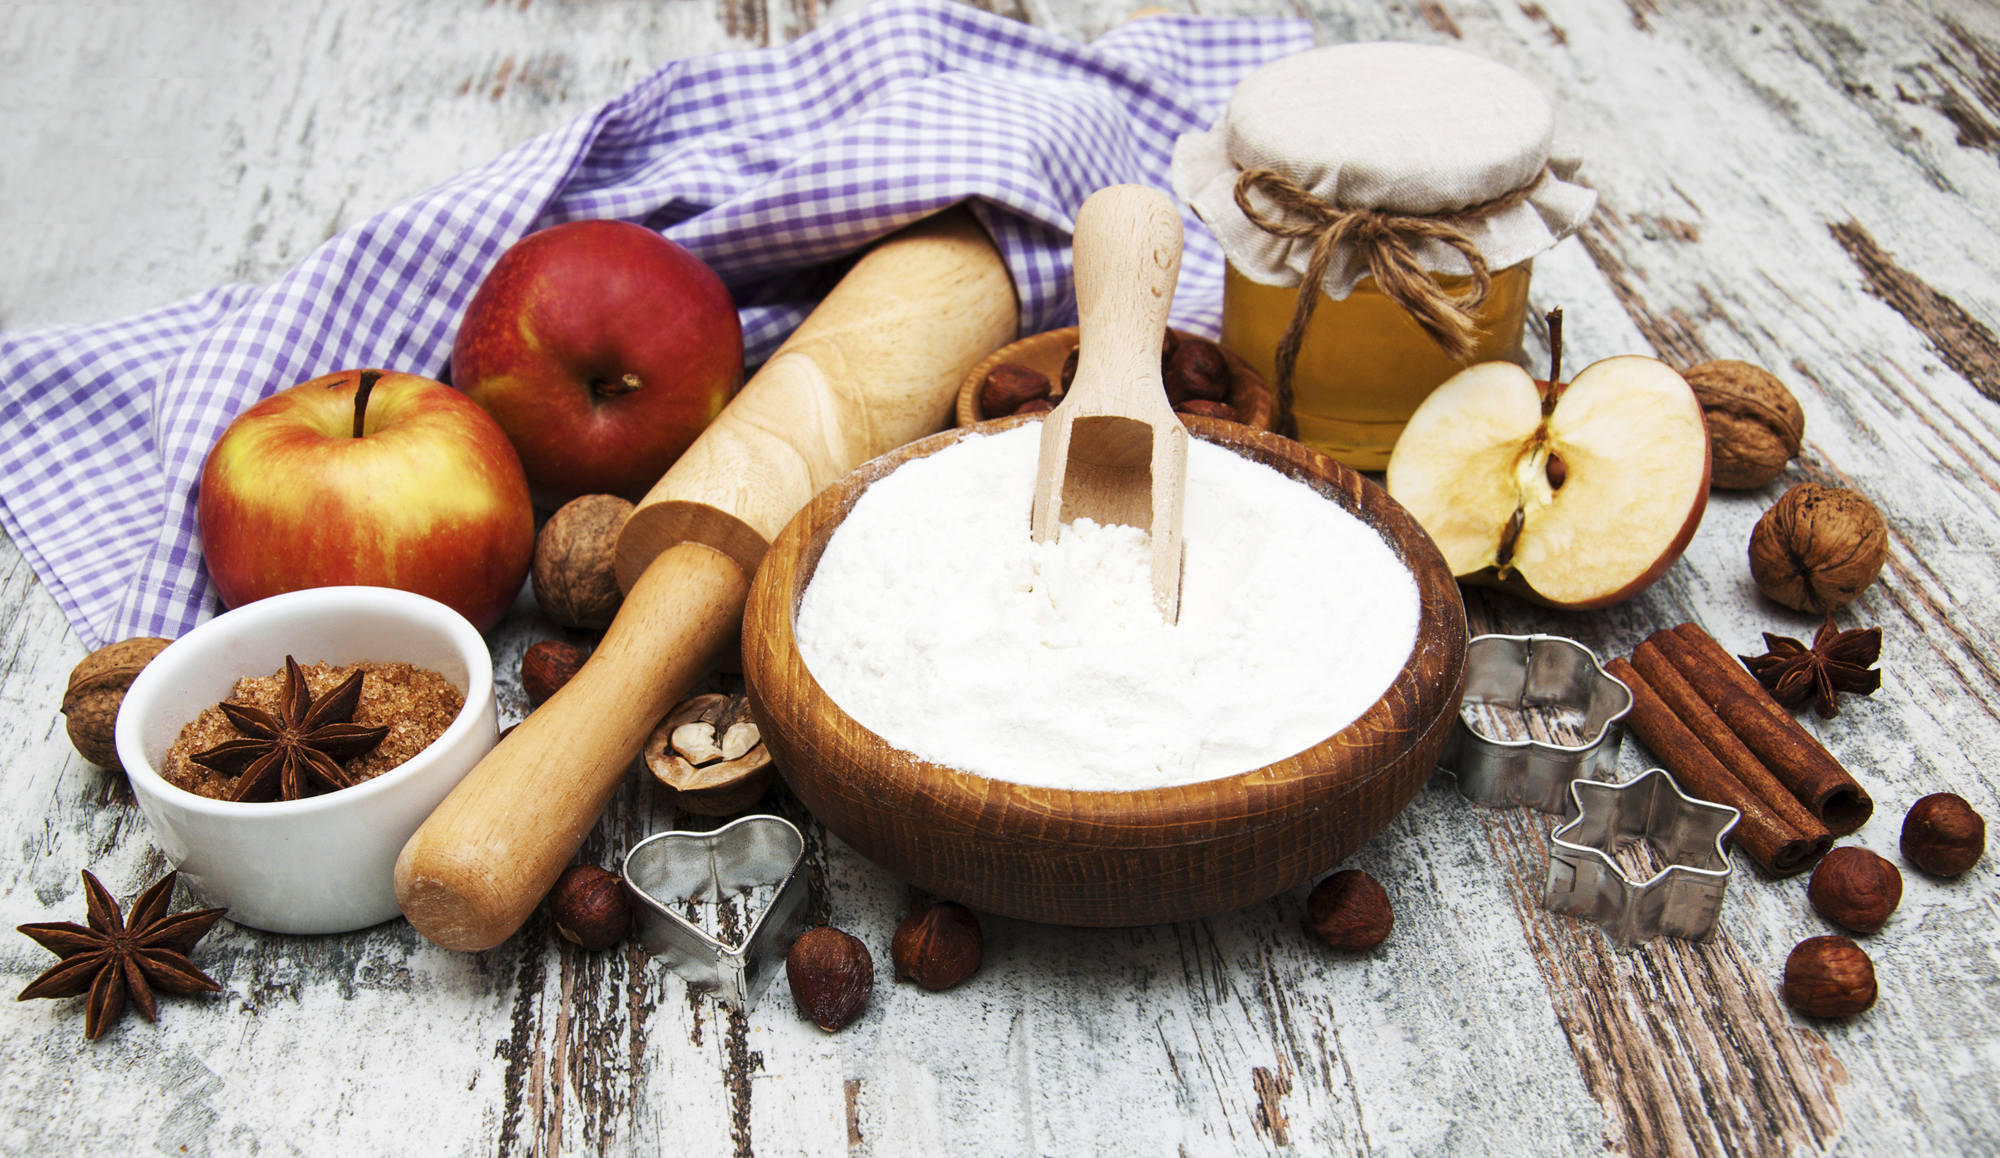 How to Reduce the Sugar Content of your Recipes